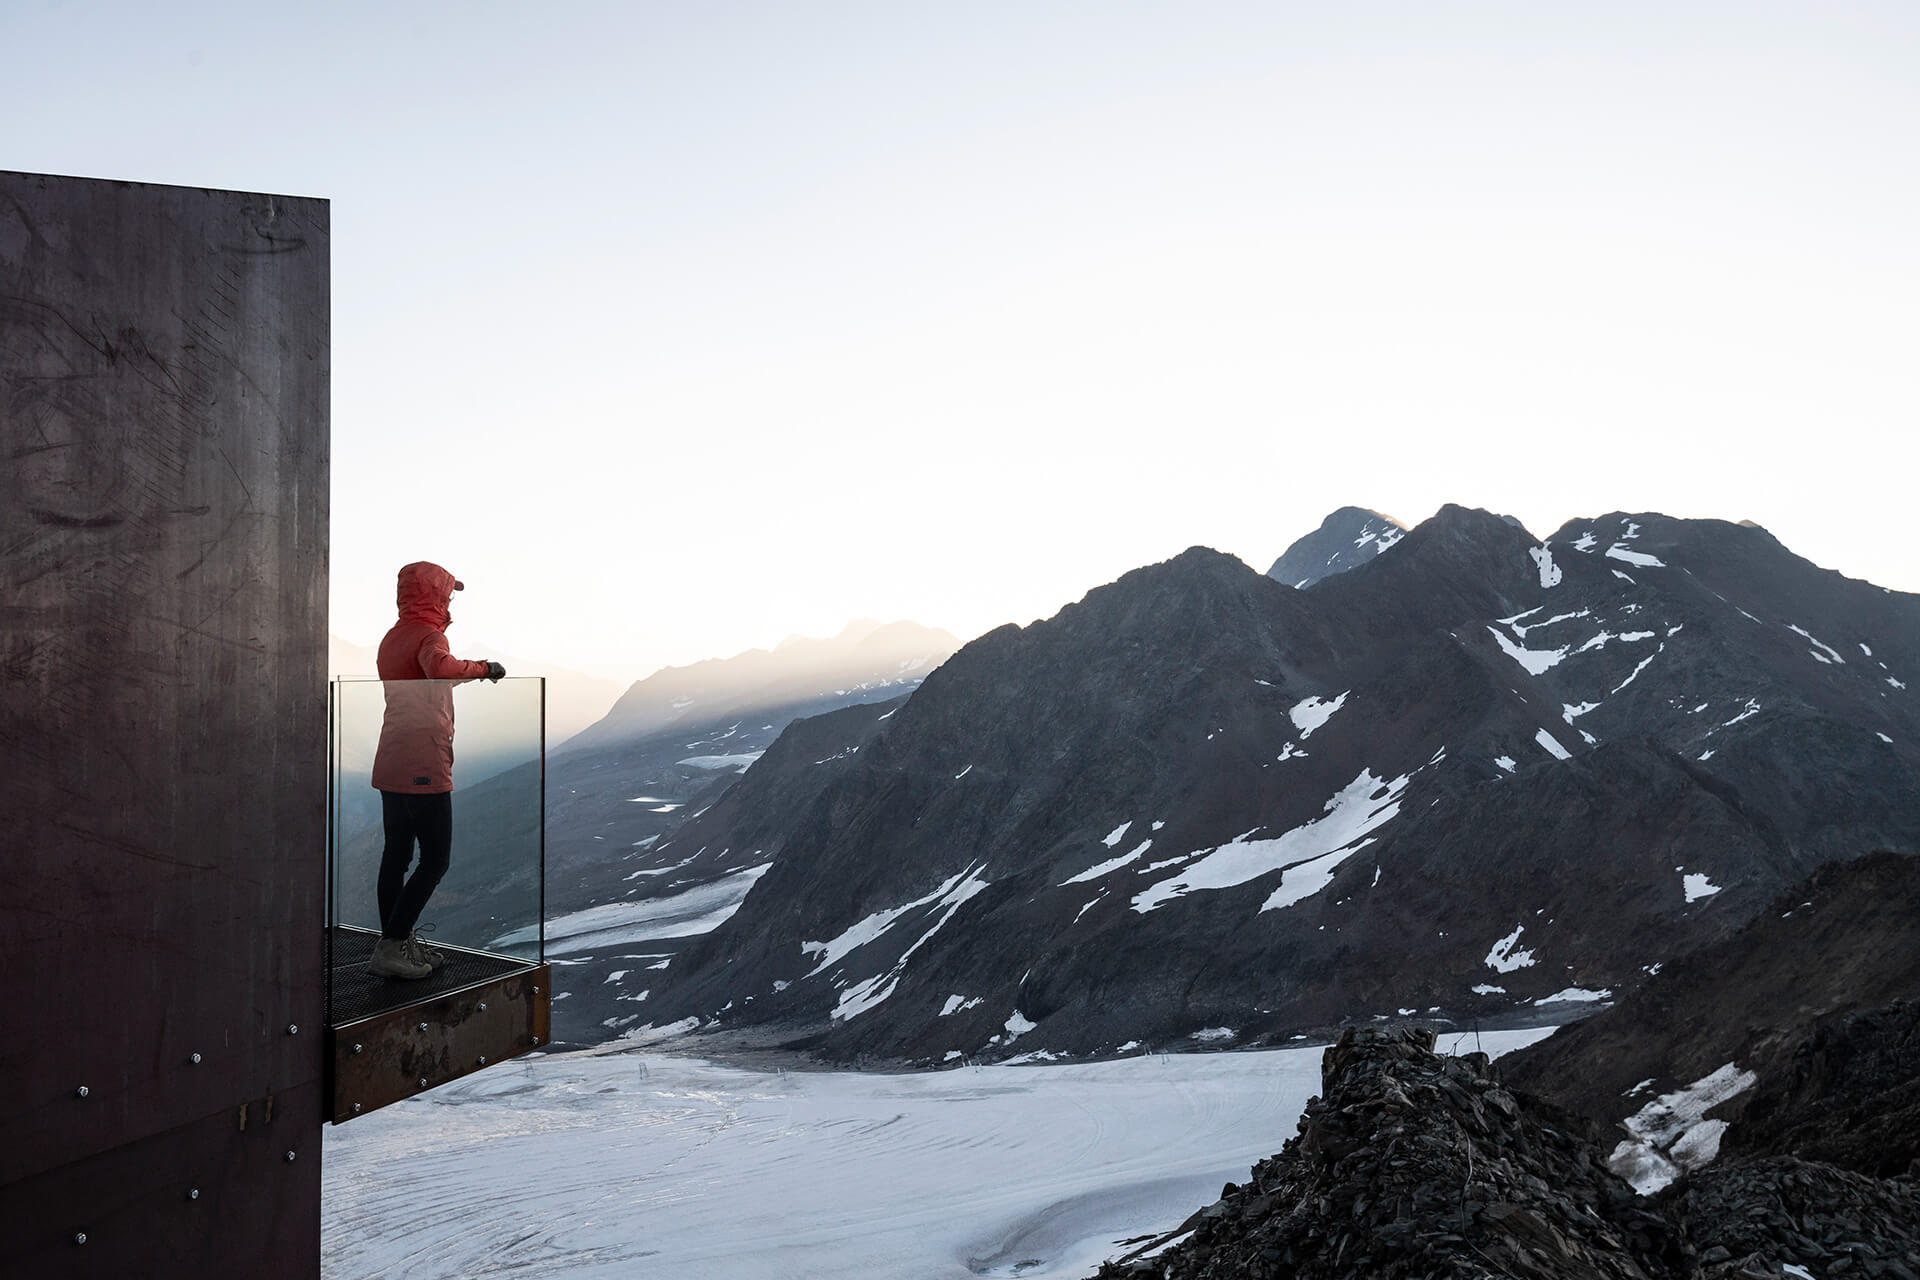 noa* designed the viewing platform as an observation tower for hikers, skiers and mountain nomads | Ötzi Peak 3251m | noa* network of architecture | STIRworld